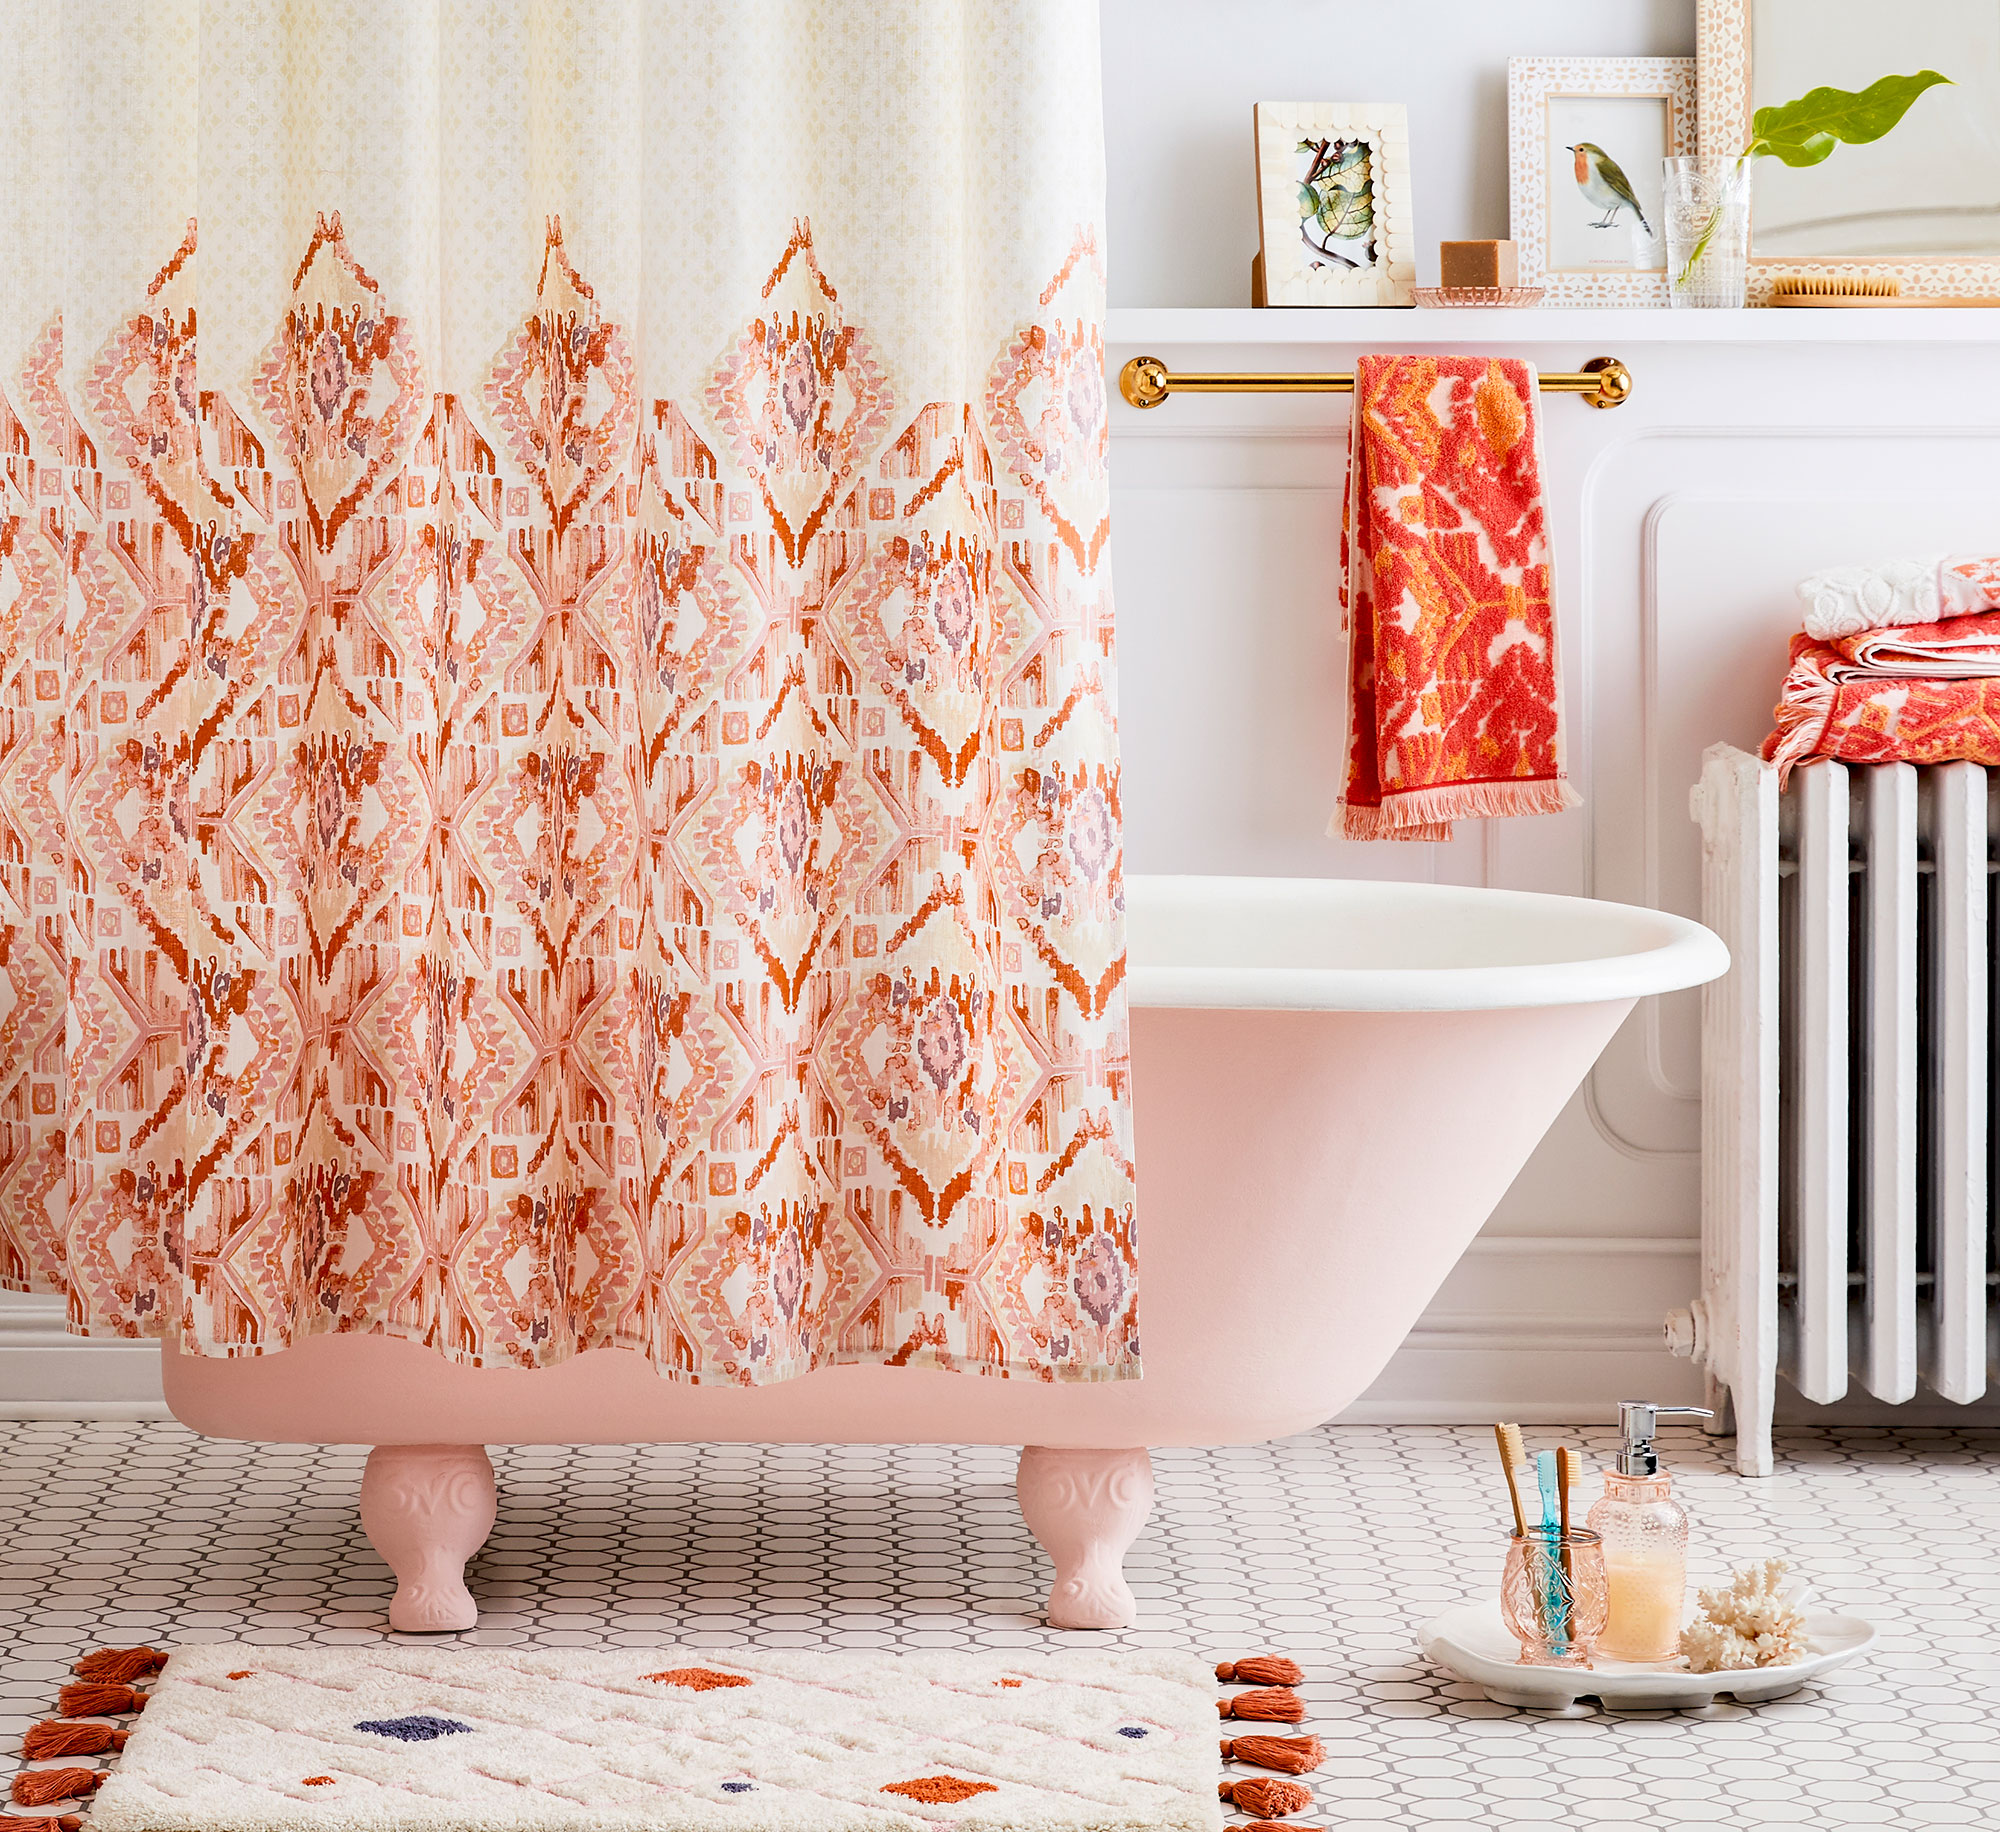 Targets Newest Bohemian Home Collection Opalhouse Is Finally